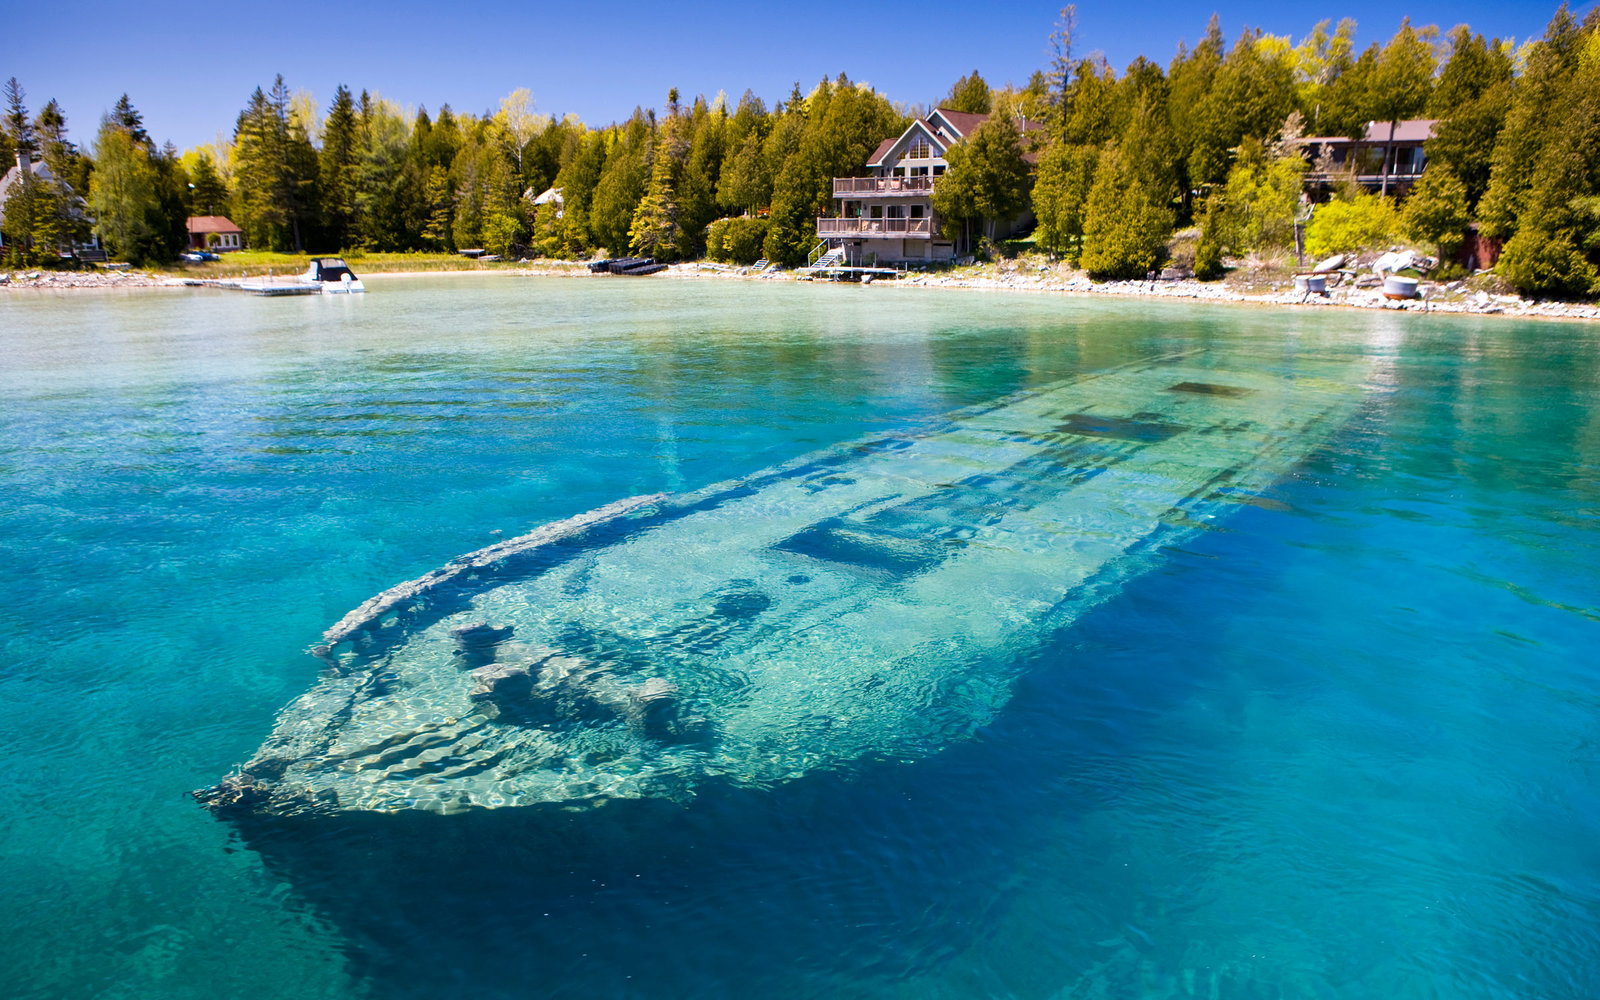 Coolest Shipwrecks